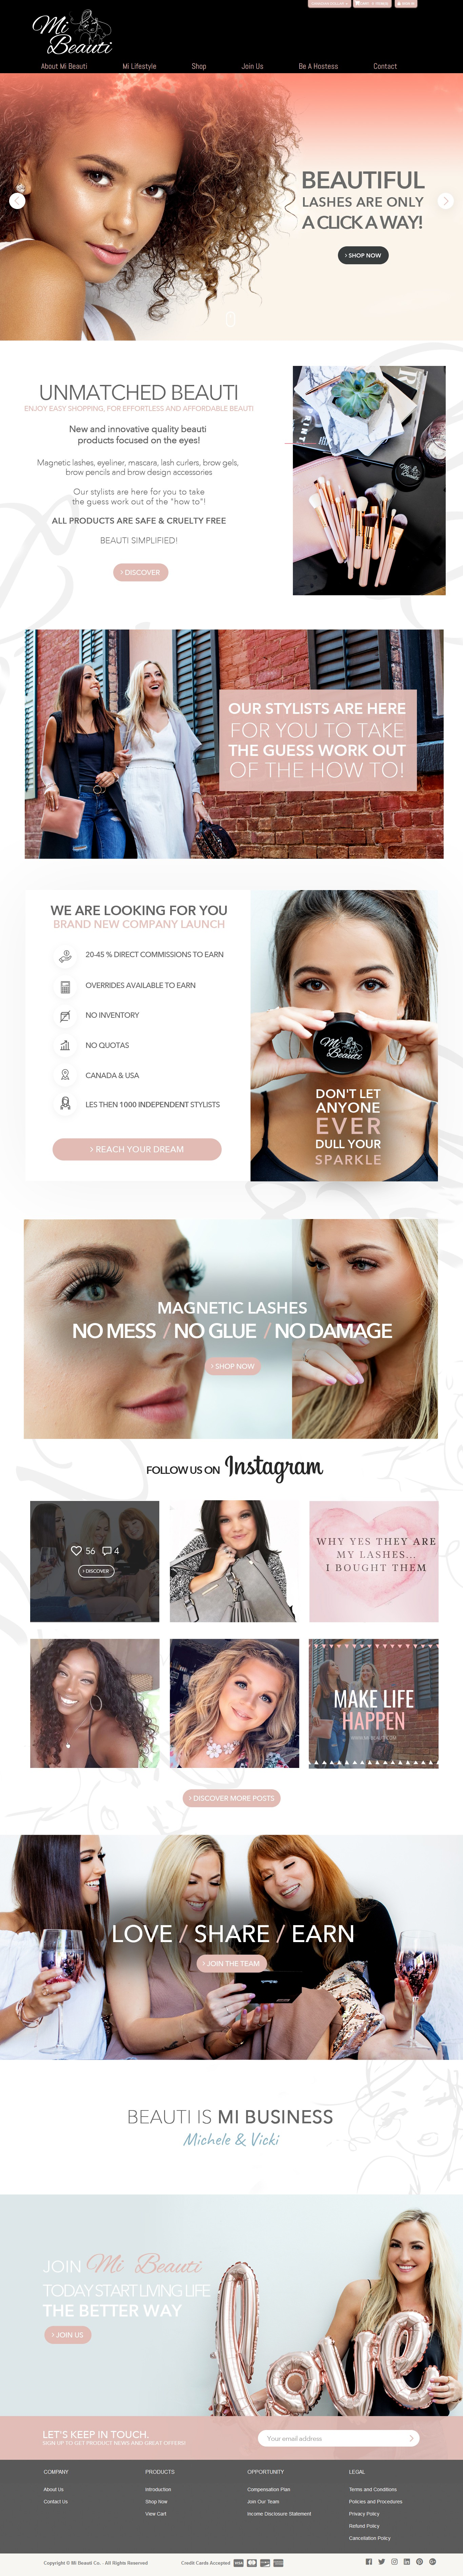 Mi Beauti Landing Page - and more to come!!!